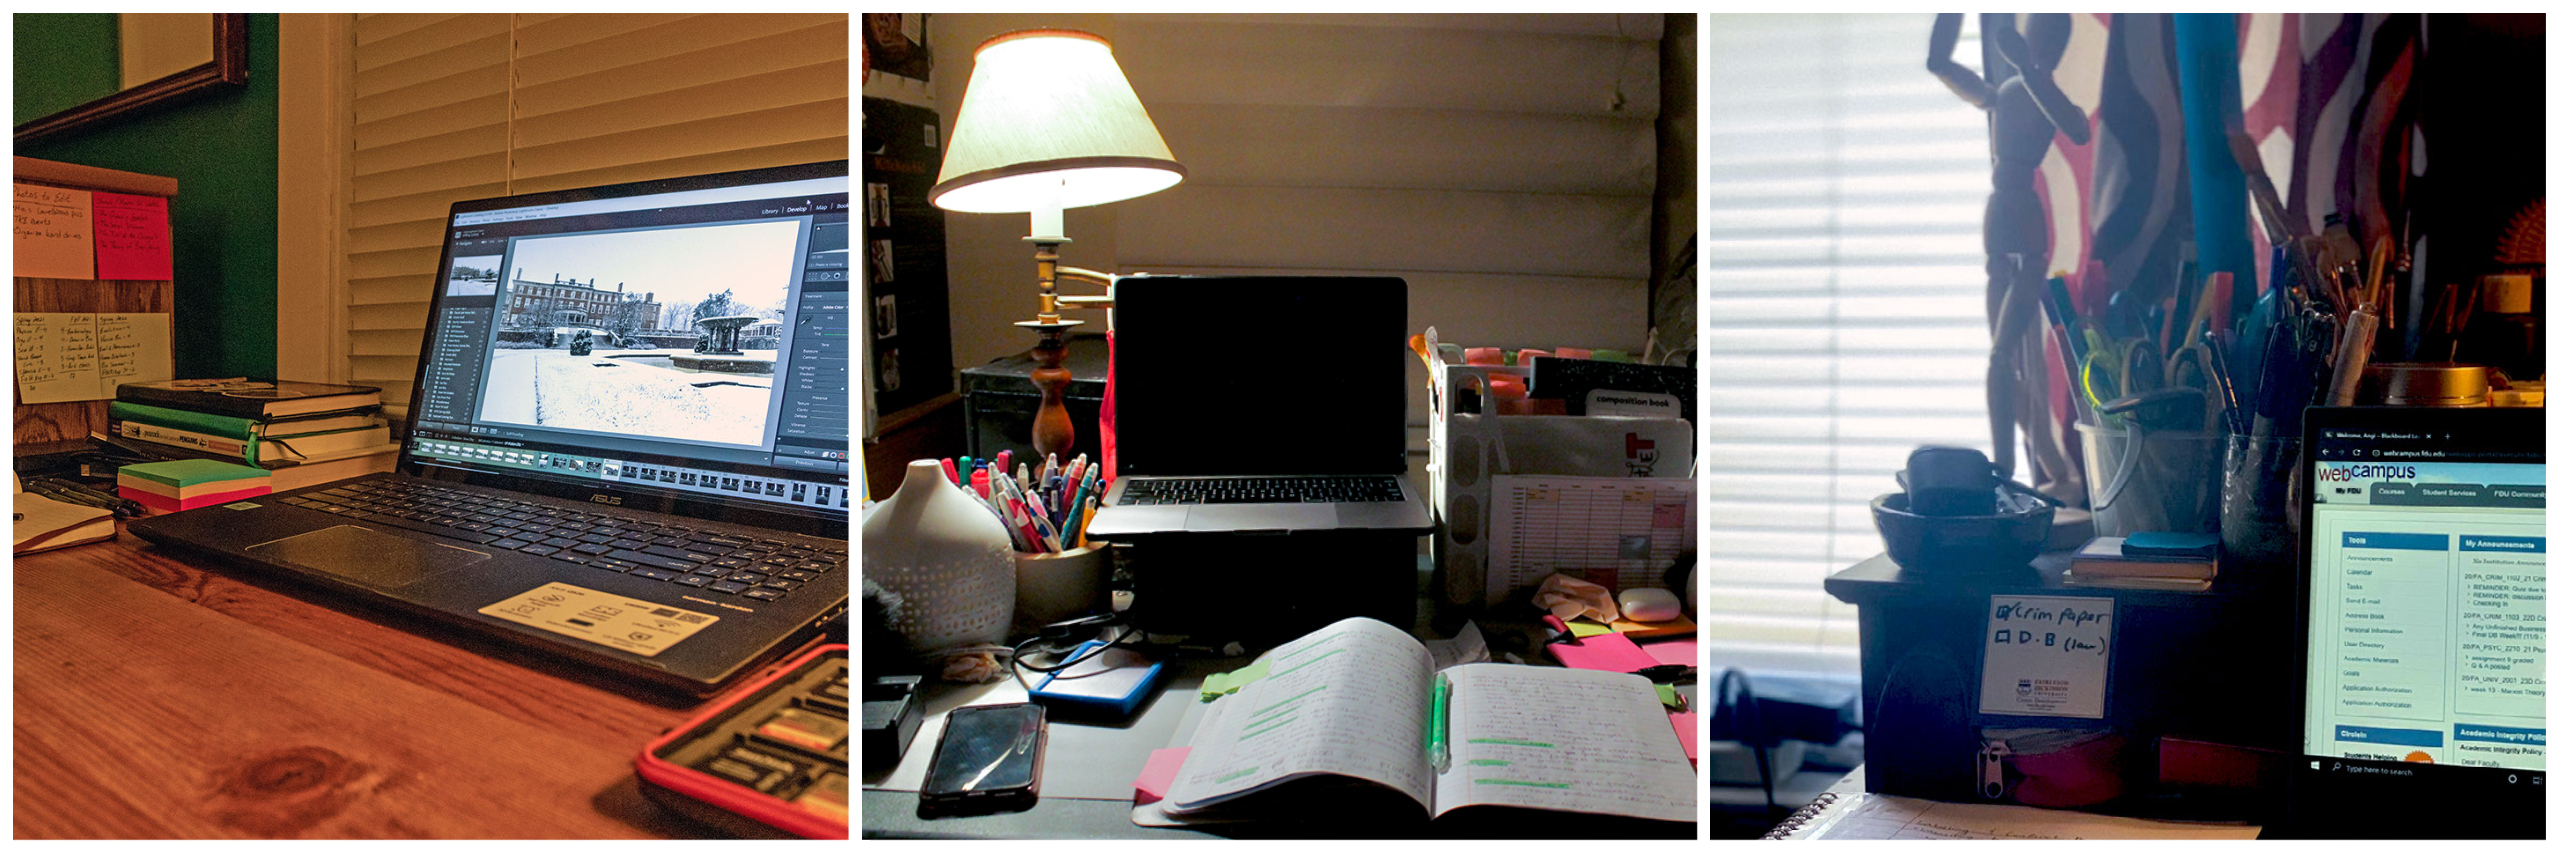 A trio of photos showing messy student desks, strewn with notebooks, laptops and other study materials.